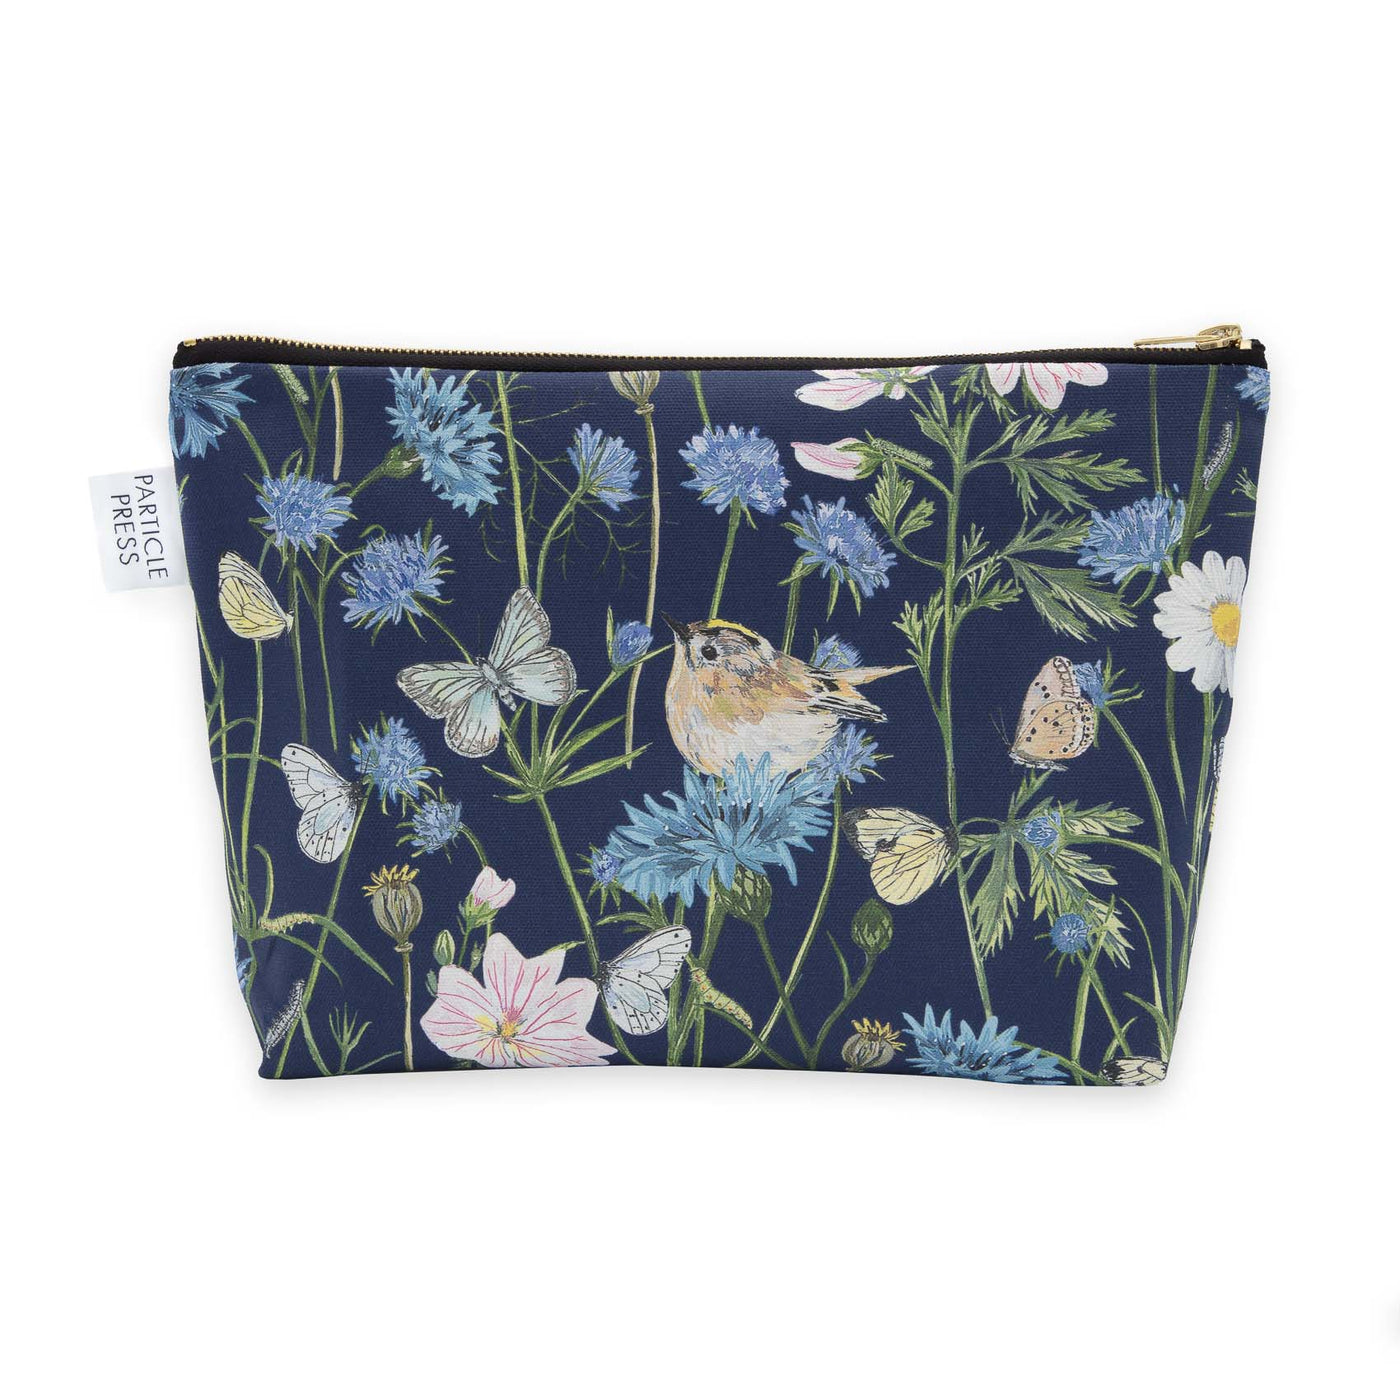 Bright and colourful bird and floral wash bag. Ideal for holidays, an excellent gift for anyone that loves birds and nature, or lives in the countryside. Navy blue with white waterproof lining. Original paintings are used to create this pattern, including Goldcrests, 17 different types of British Butterflies, Cornflowers, thistles, common mallow, cosmos and poppies.